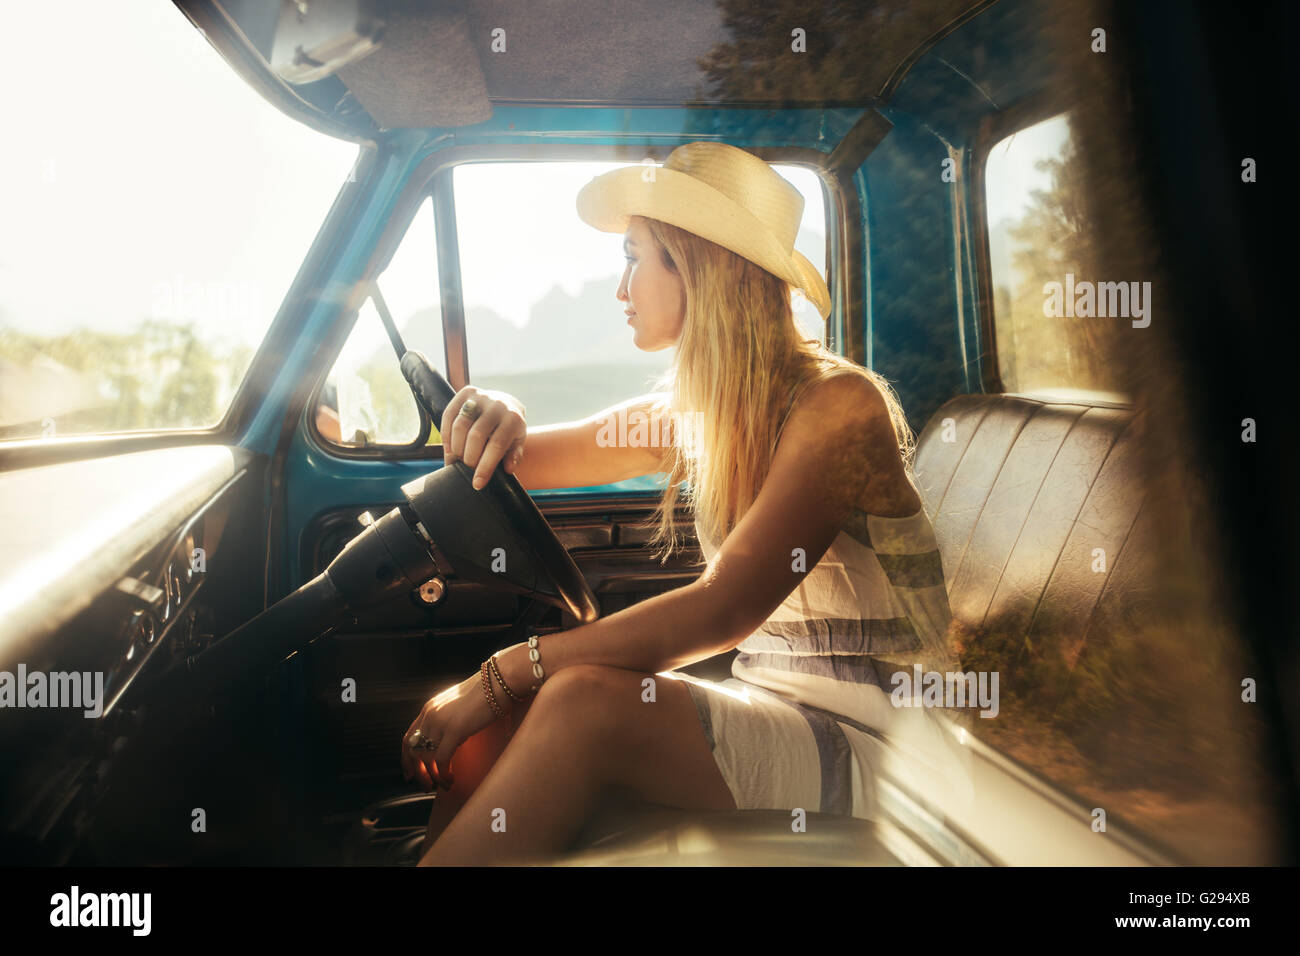 Portrait of young woman sitting on driving seat of a car and looking away. Girl wearing hat on a road trip. - Stock Image